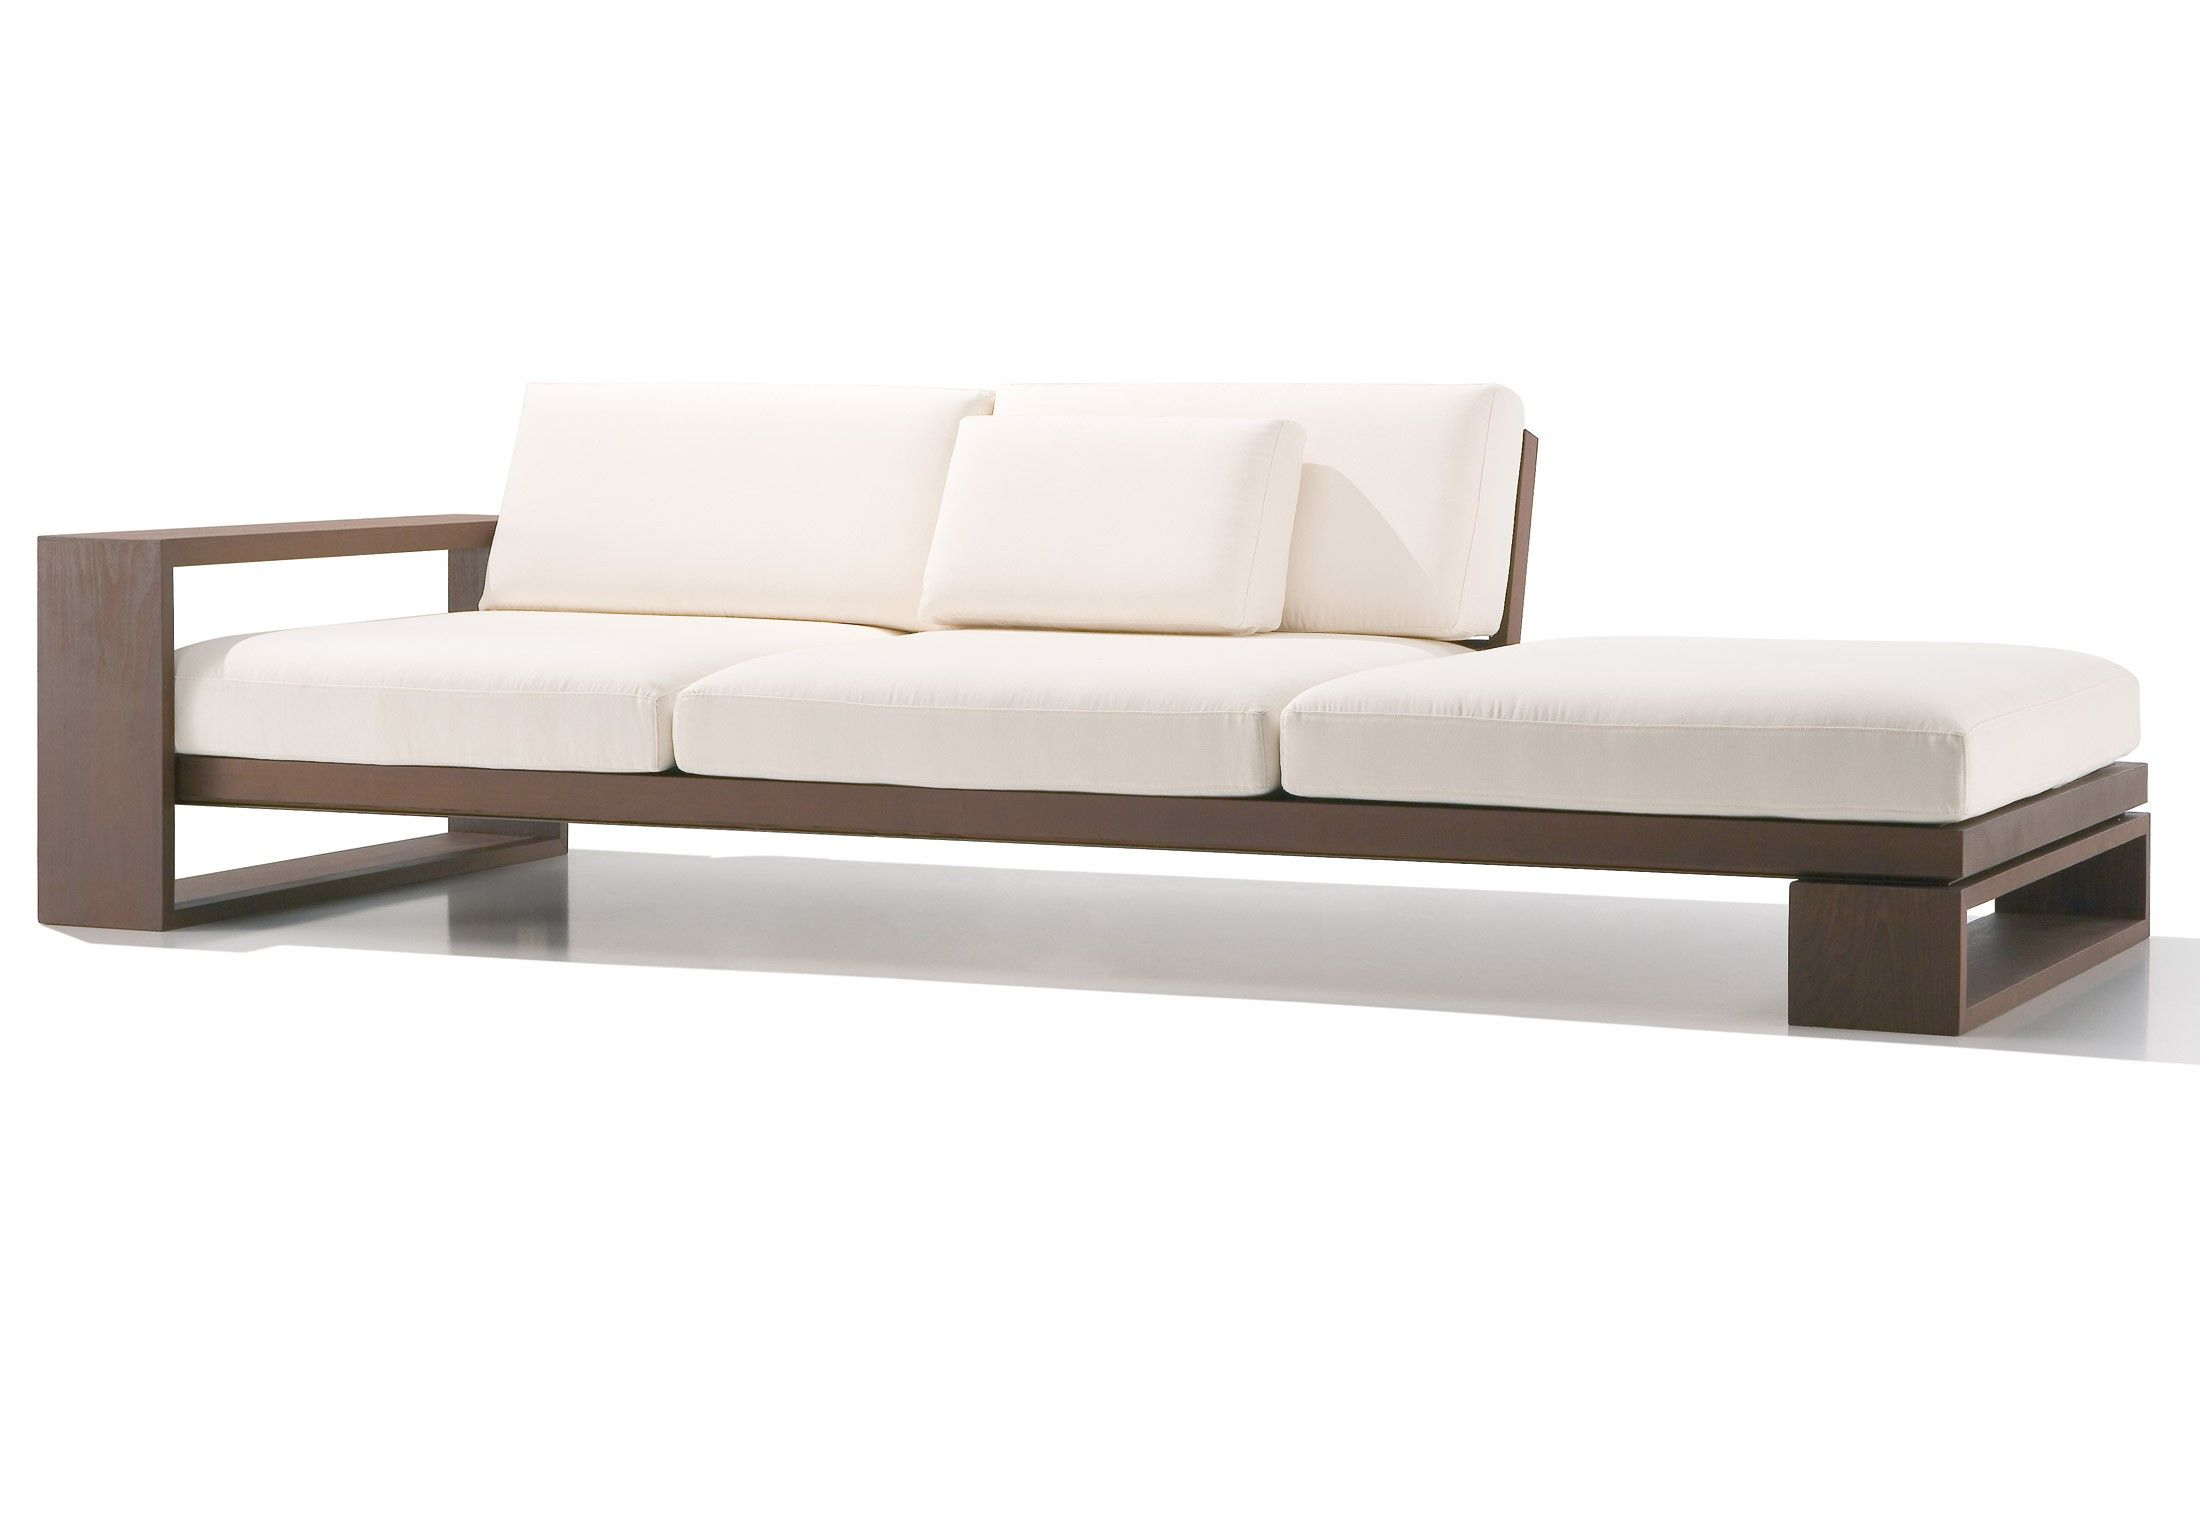 Simple Brown Wooden White Sofa fers Space